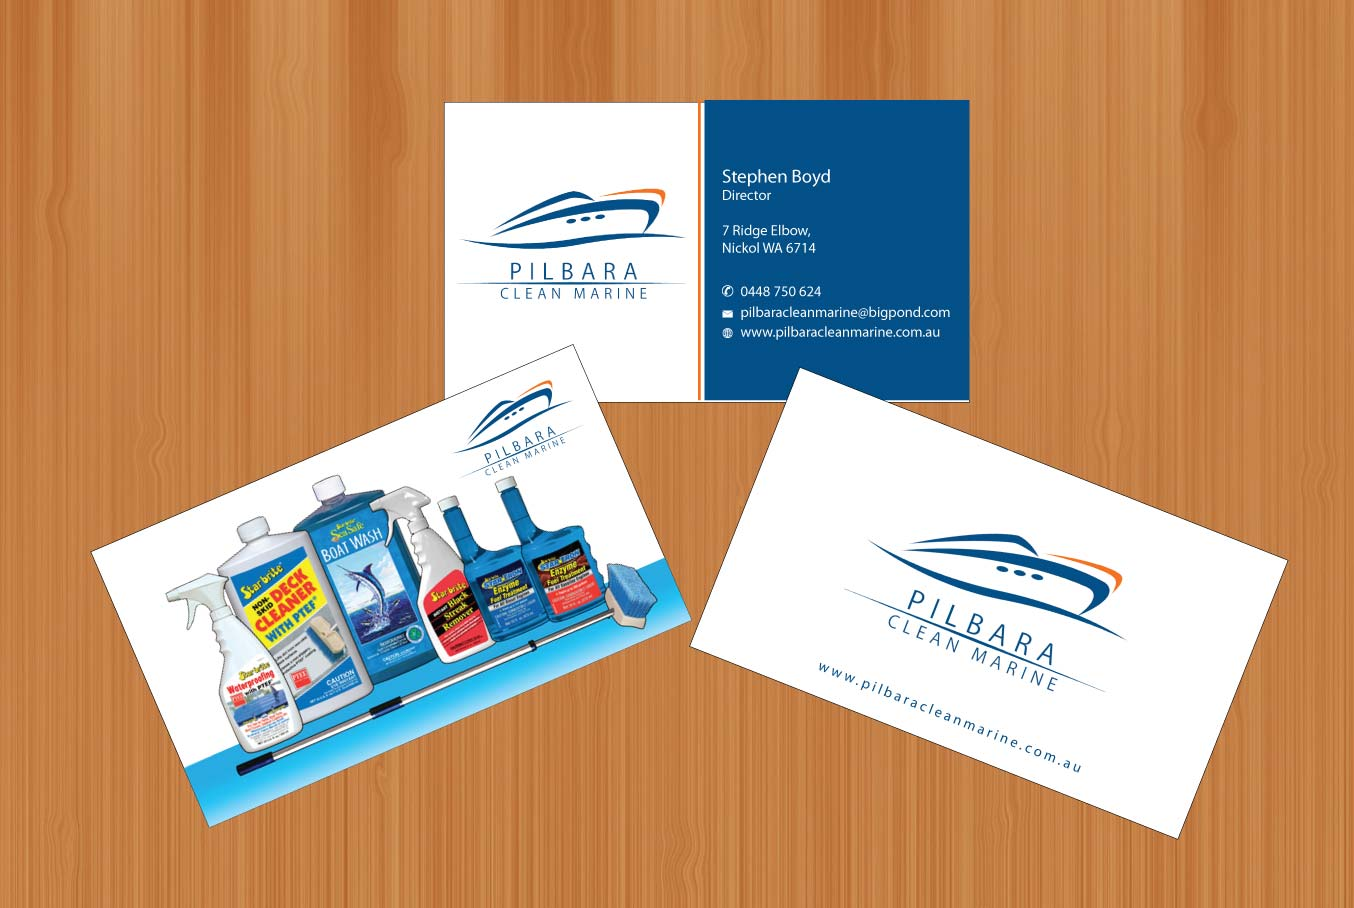 Modern professional business card design for pilbara clean marine business card design by smart for pilbara clean marine business cards design 797262 magicingreecefo Gallery